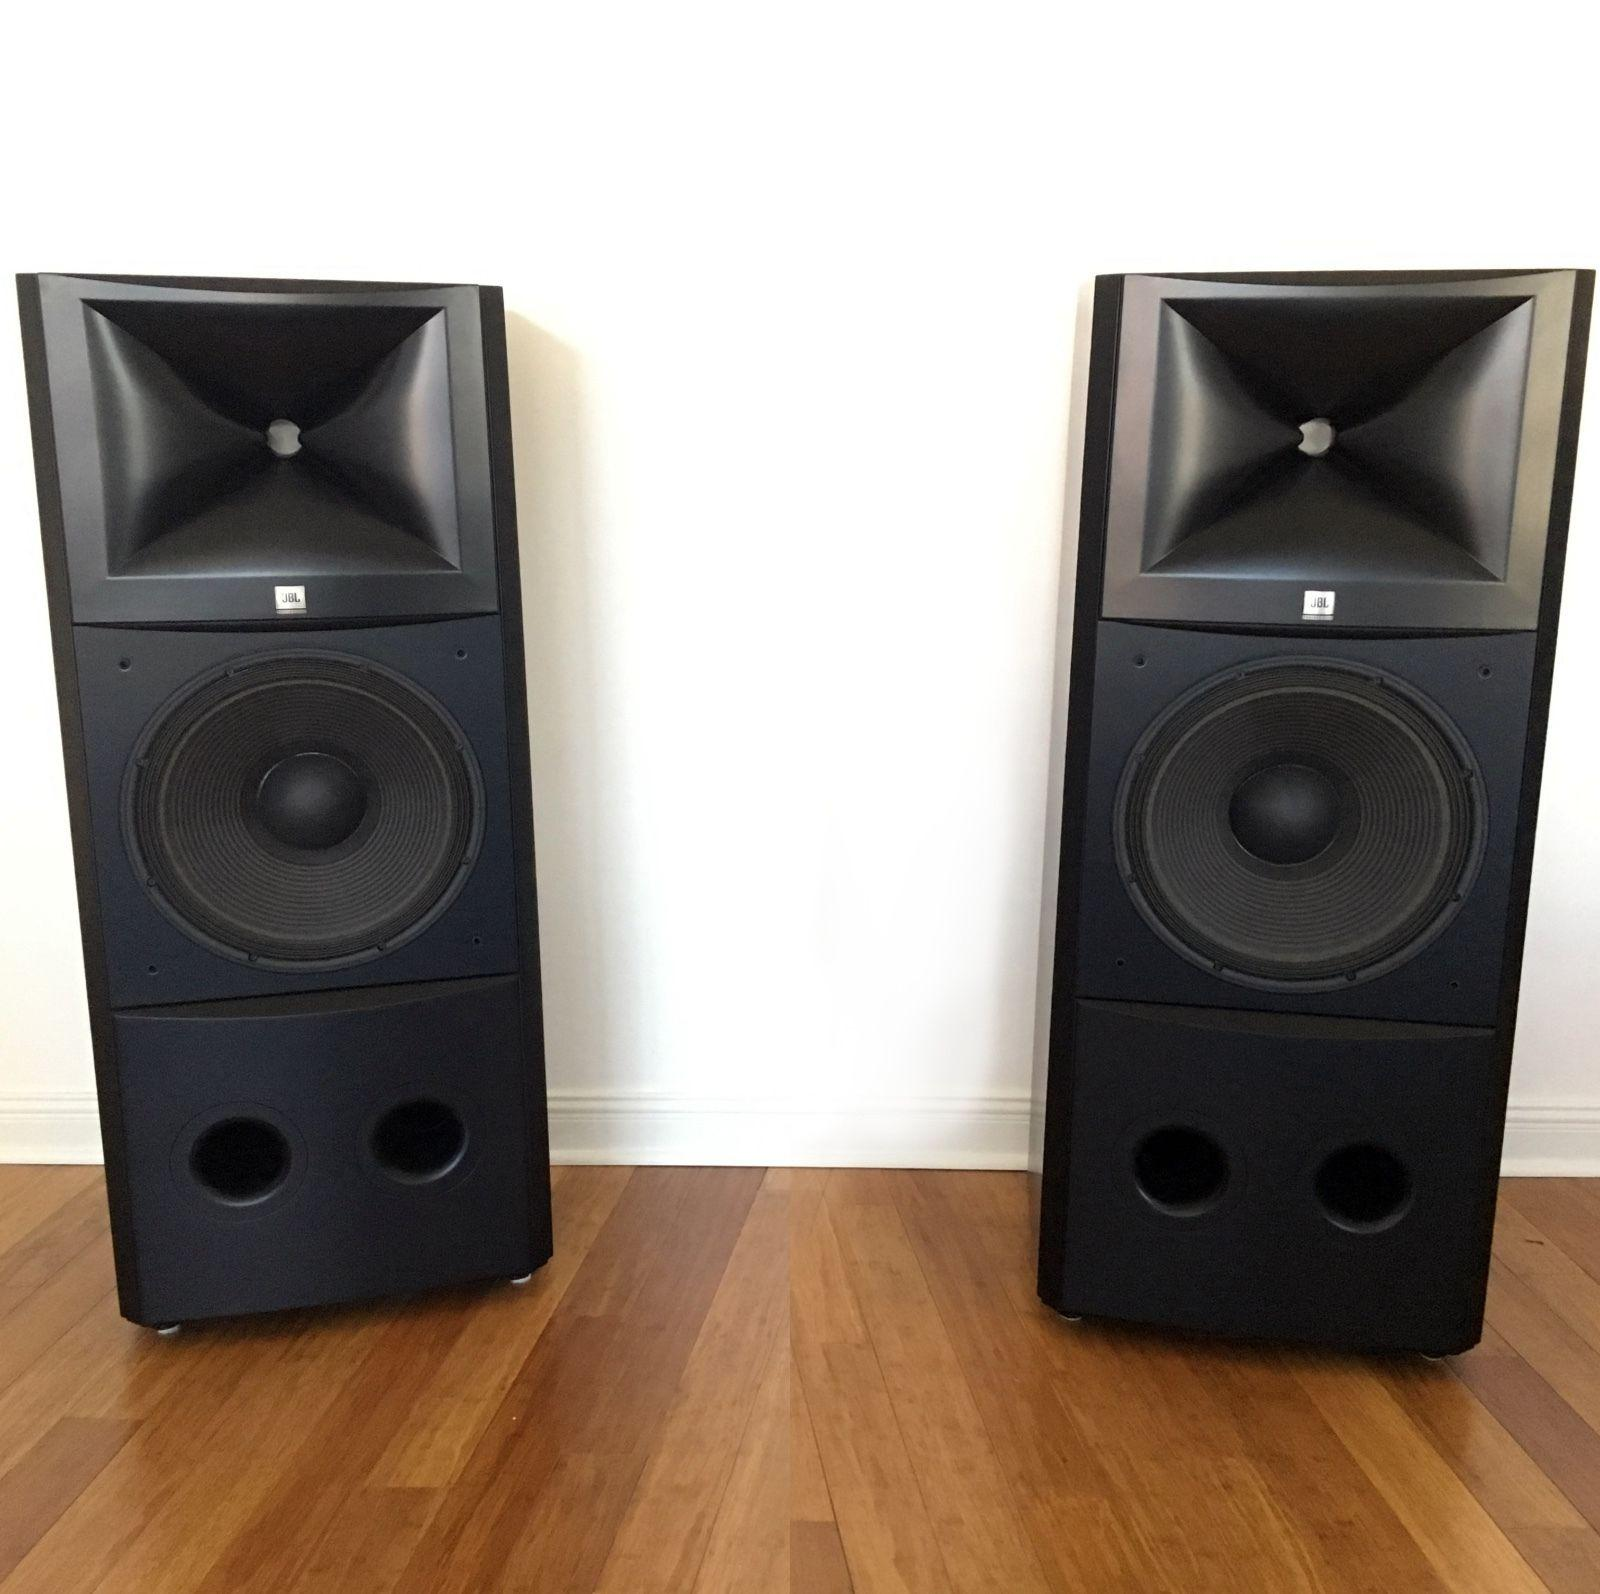 Dynaudio Focus 340 Speakers